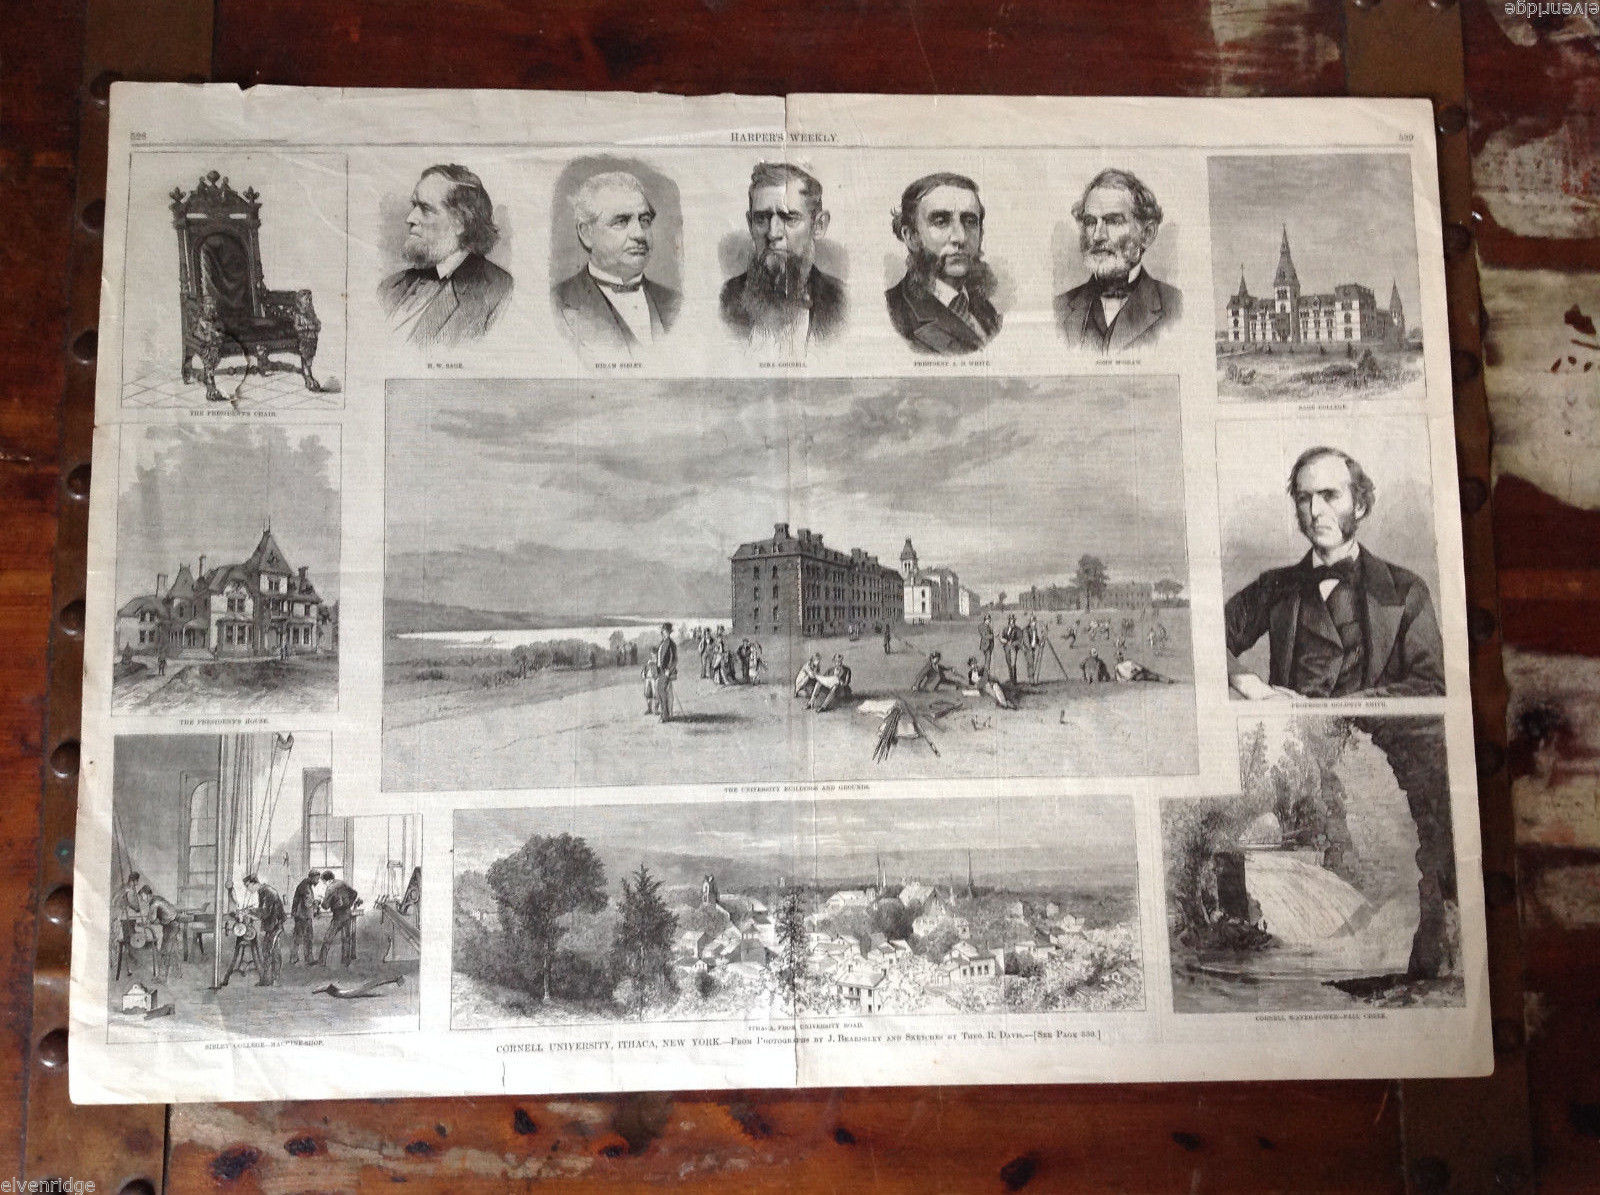 Harper's Weekly June 21, 1873 Newspaper Cornell  Pictoral Spread Pages 528-529